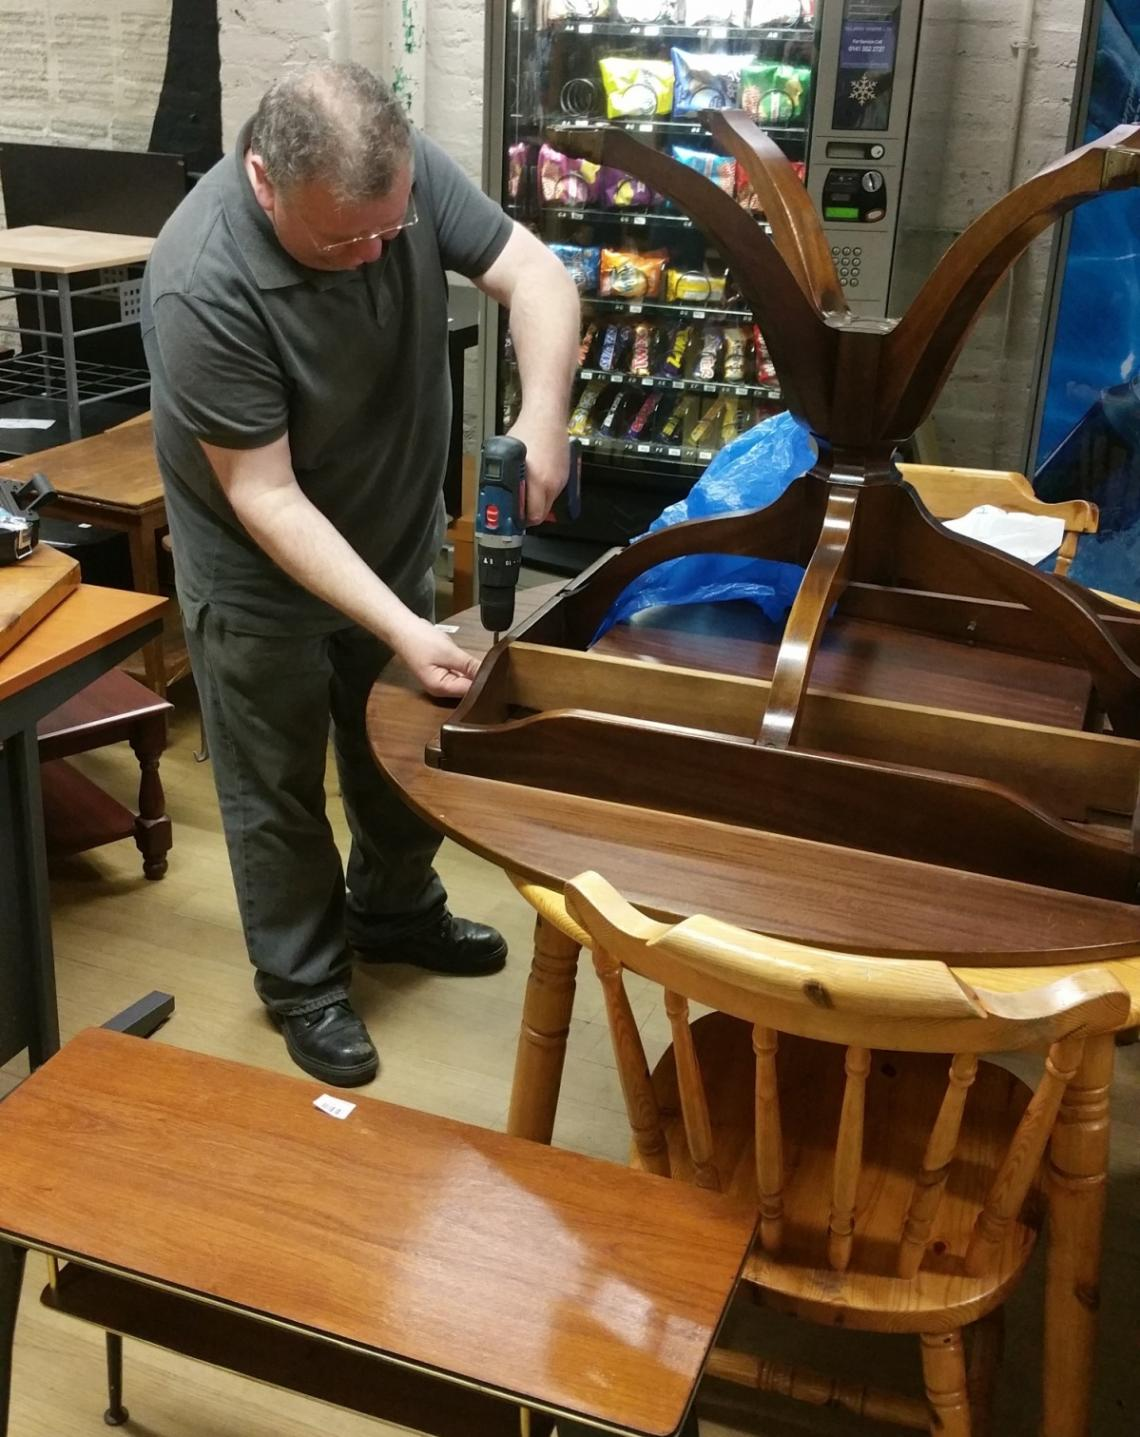 Former Cabinet Maker Restores Furniture To Repay Salvation Army